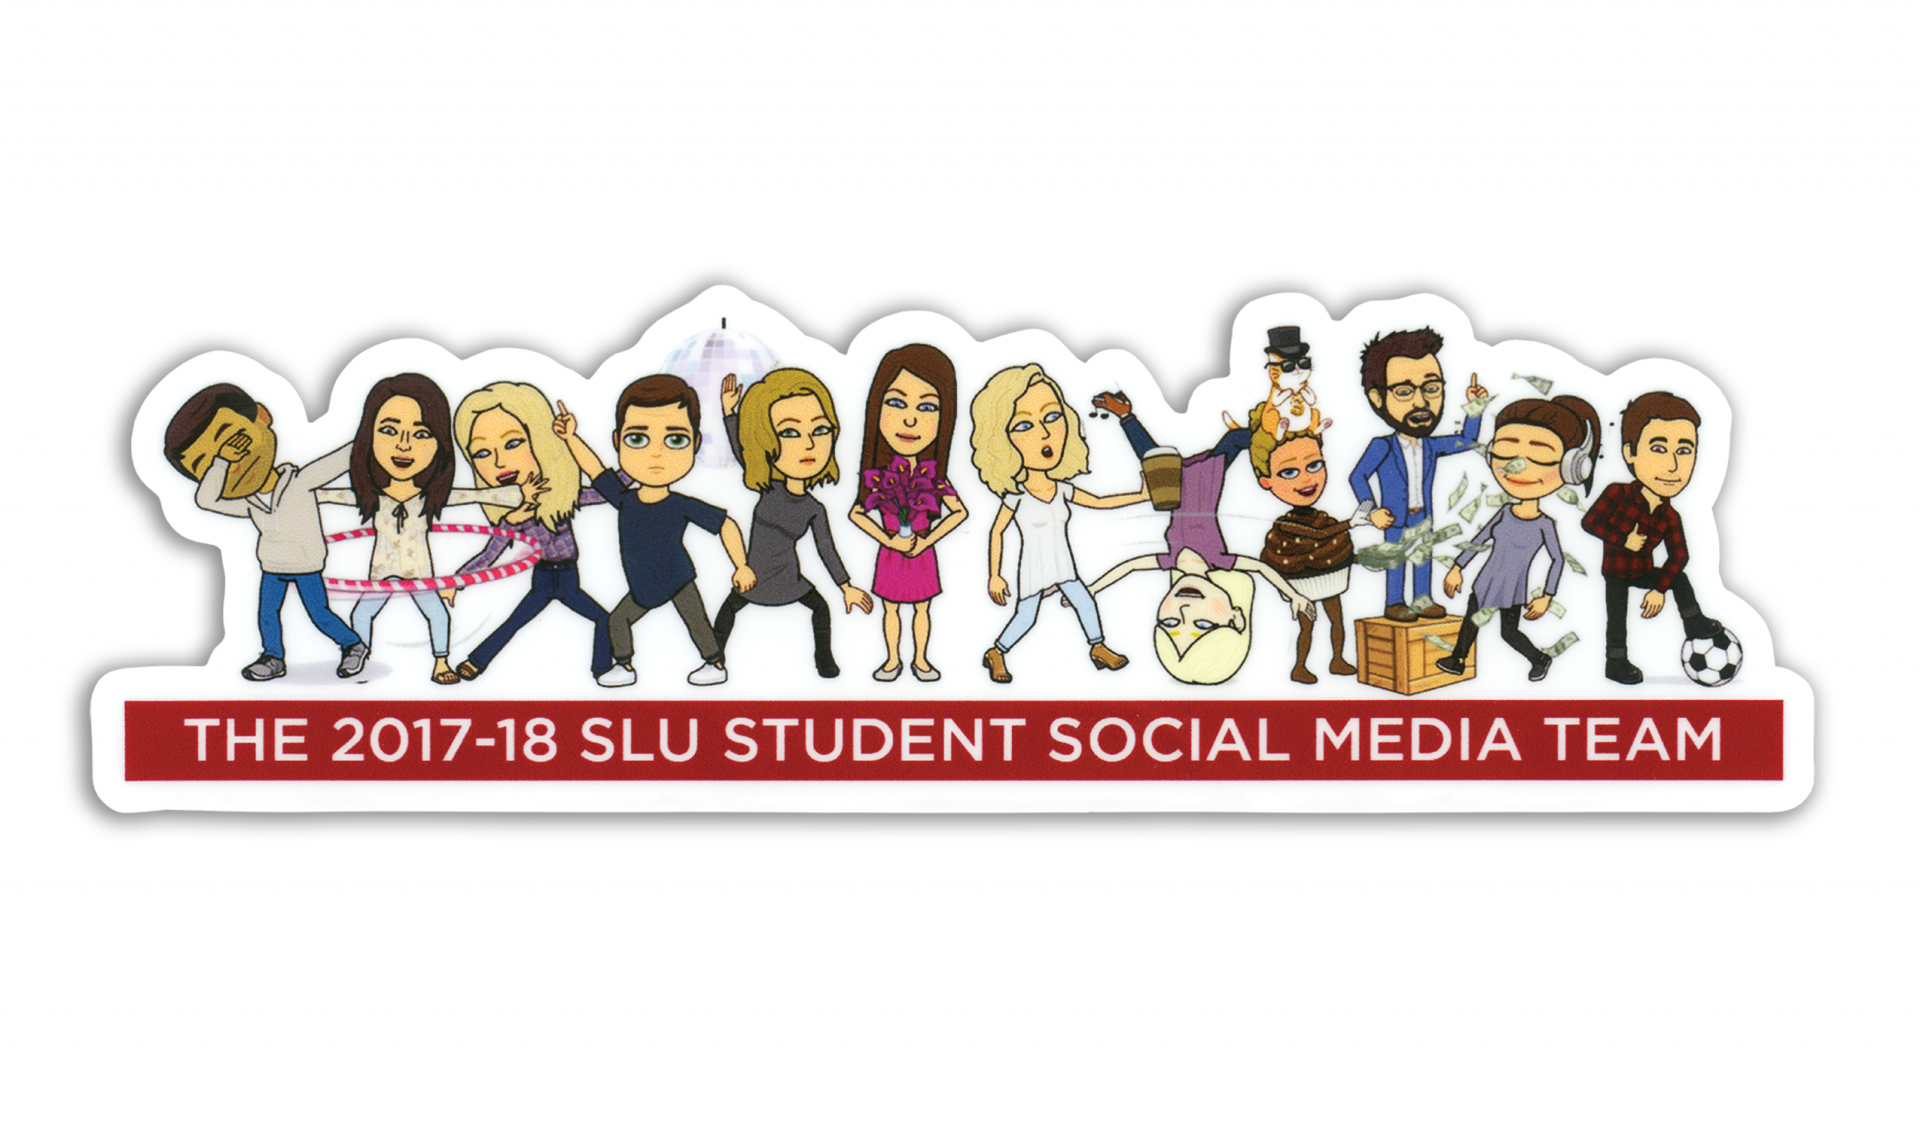 Stylized graphic of the members of the social media team at St. Lawrence